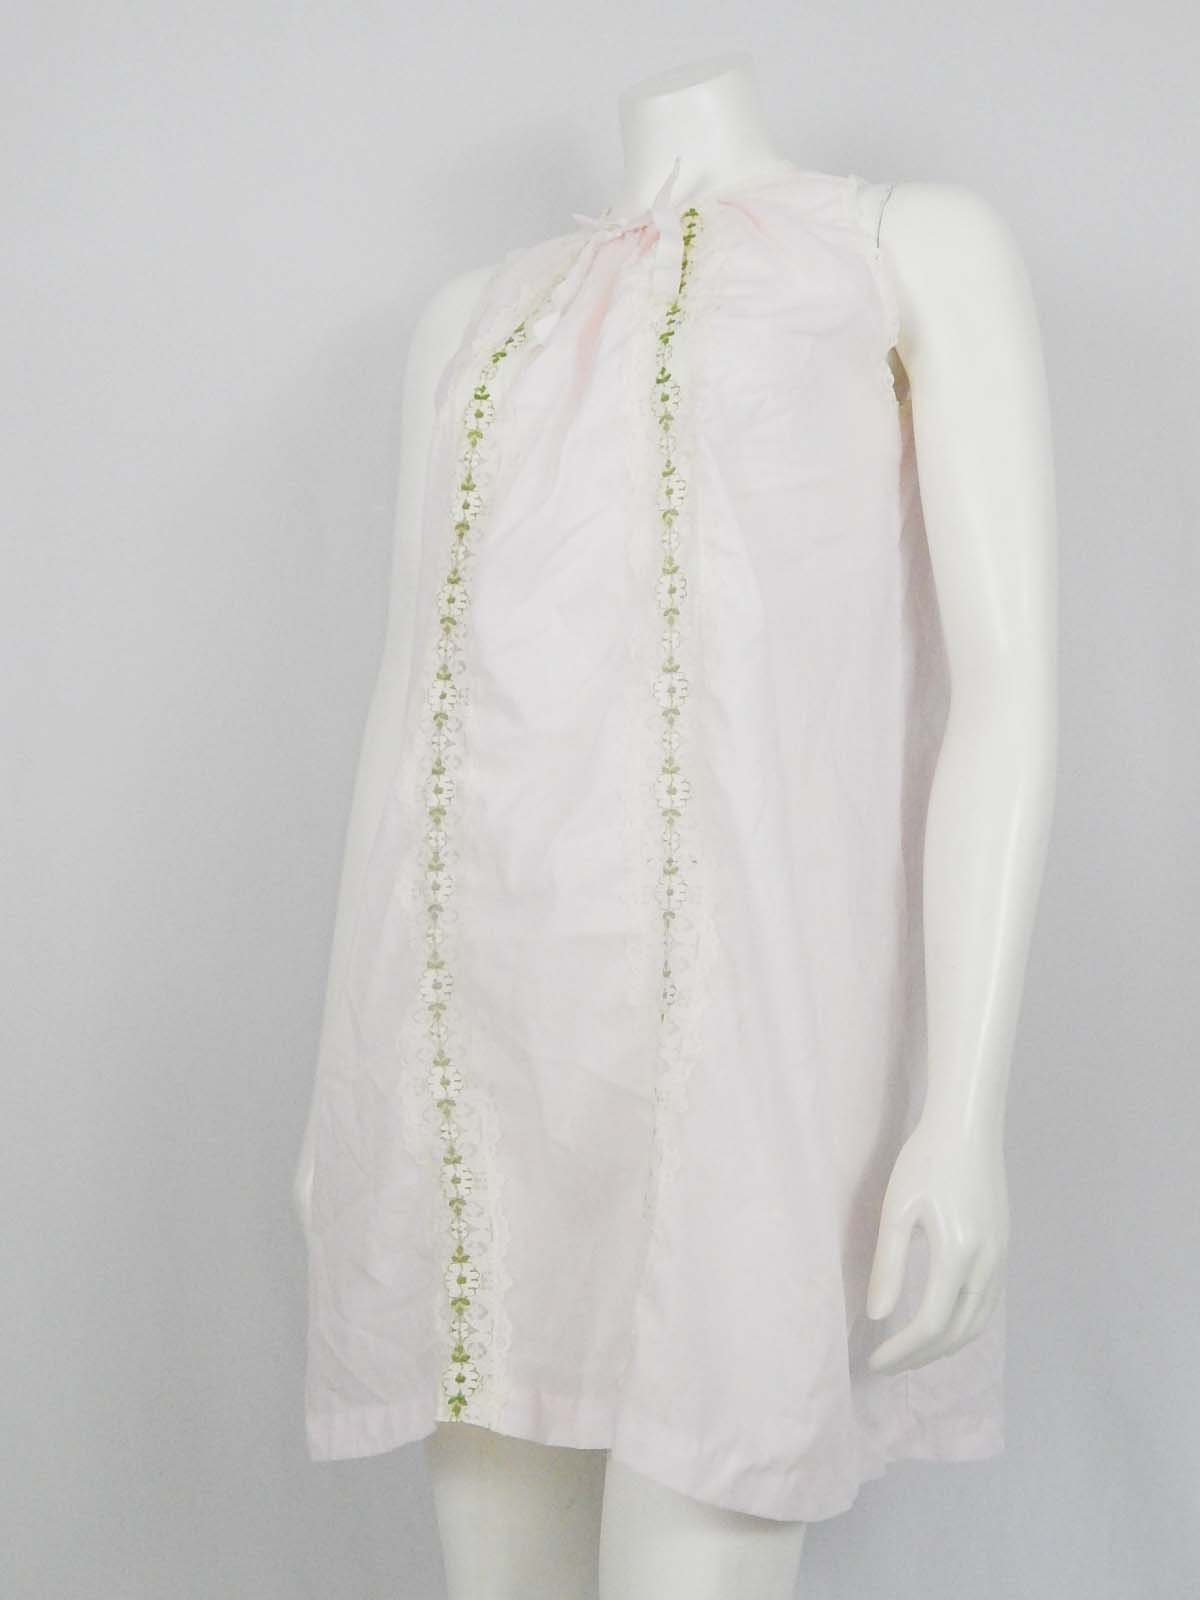 Vintage Pale Pink Sleeveless Small S Nightgown White Lace Etsy